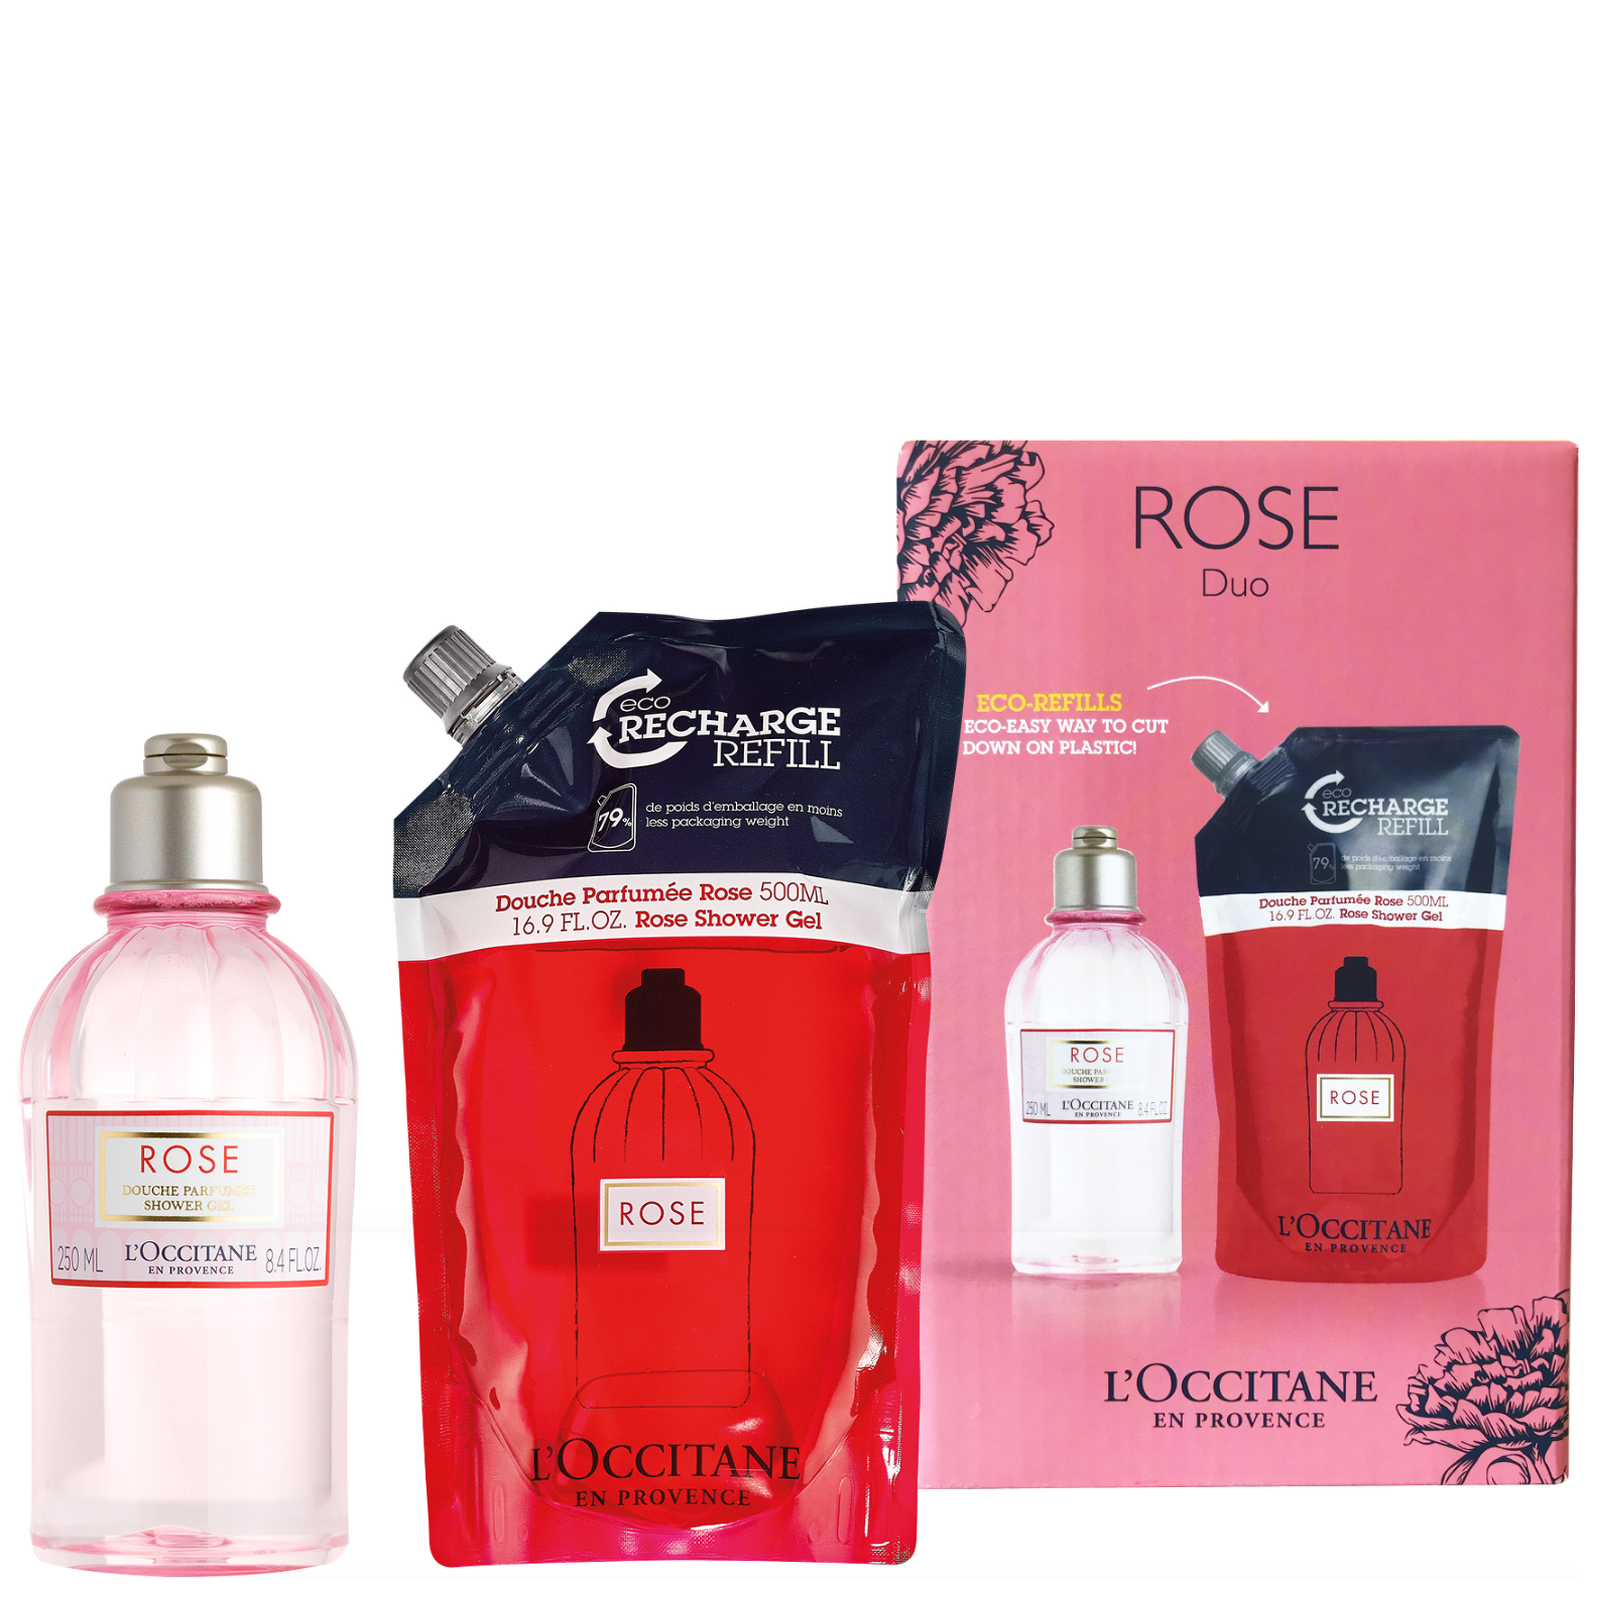 L'Occitane Rose Shower Gel and Refill Duo